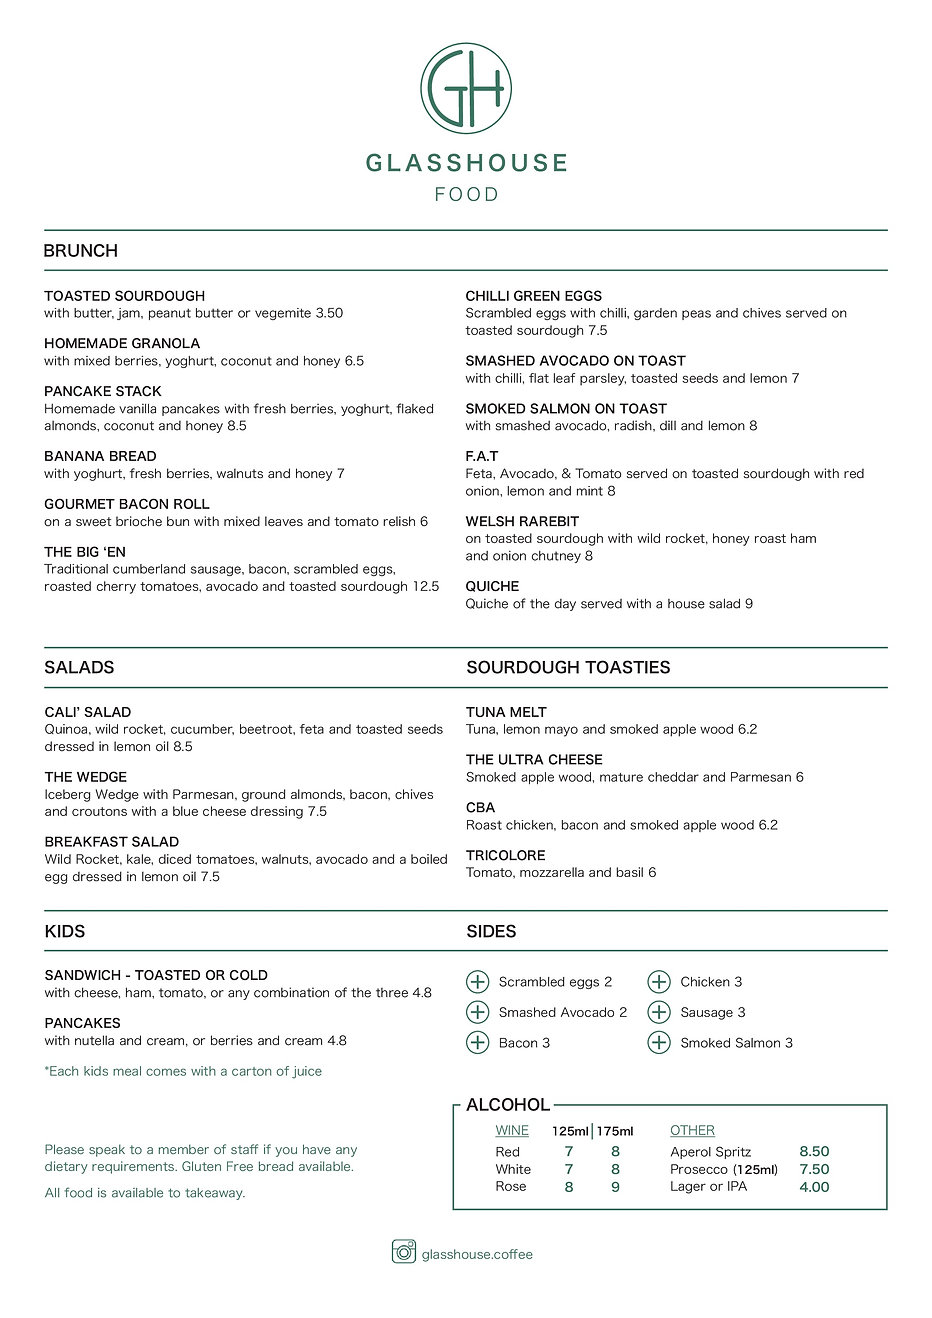 Glasshouse Menu.jpg